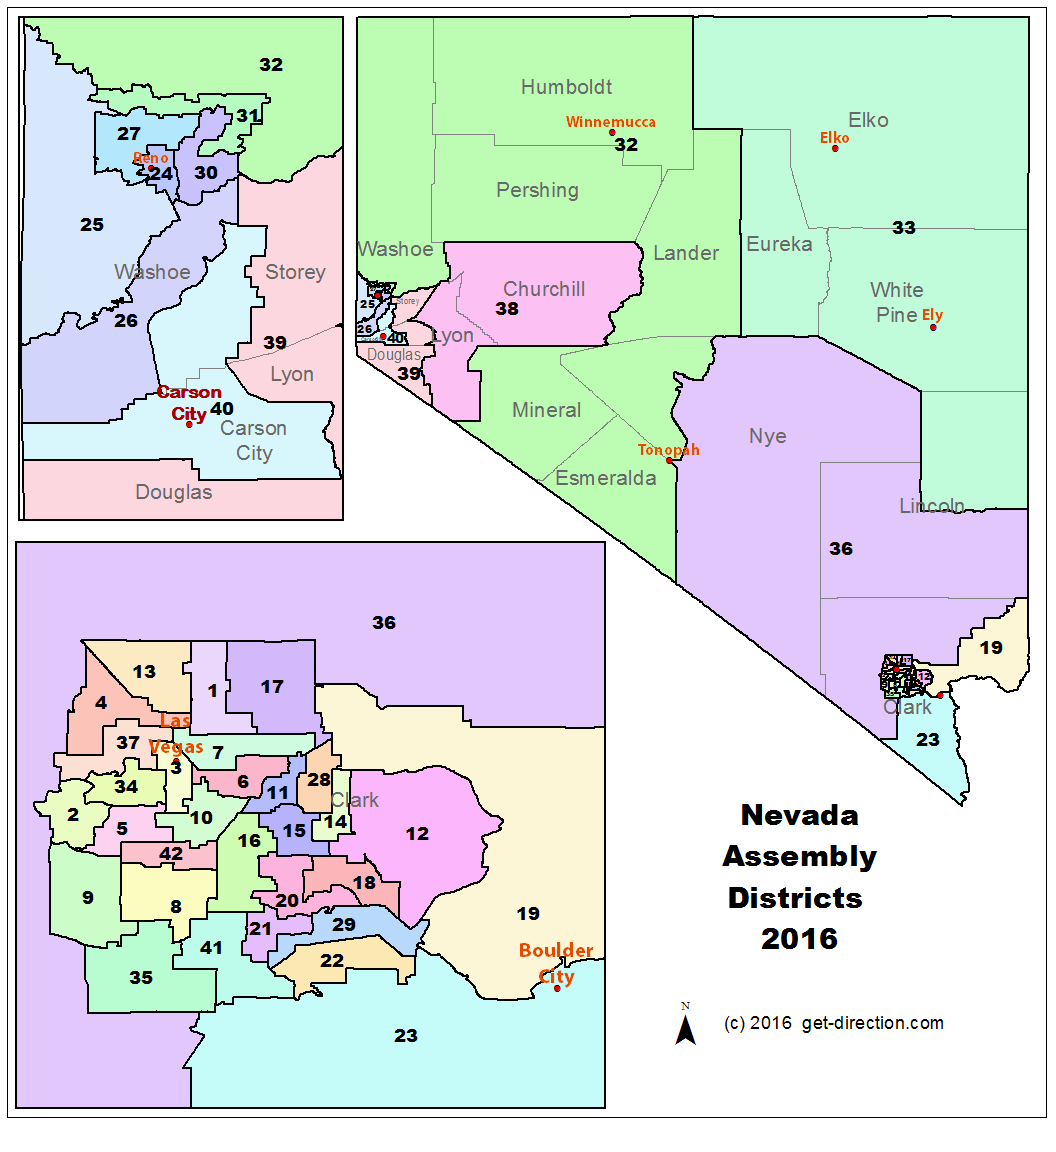 nevada-assembly-districts-2016.png